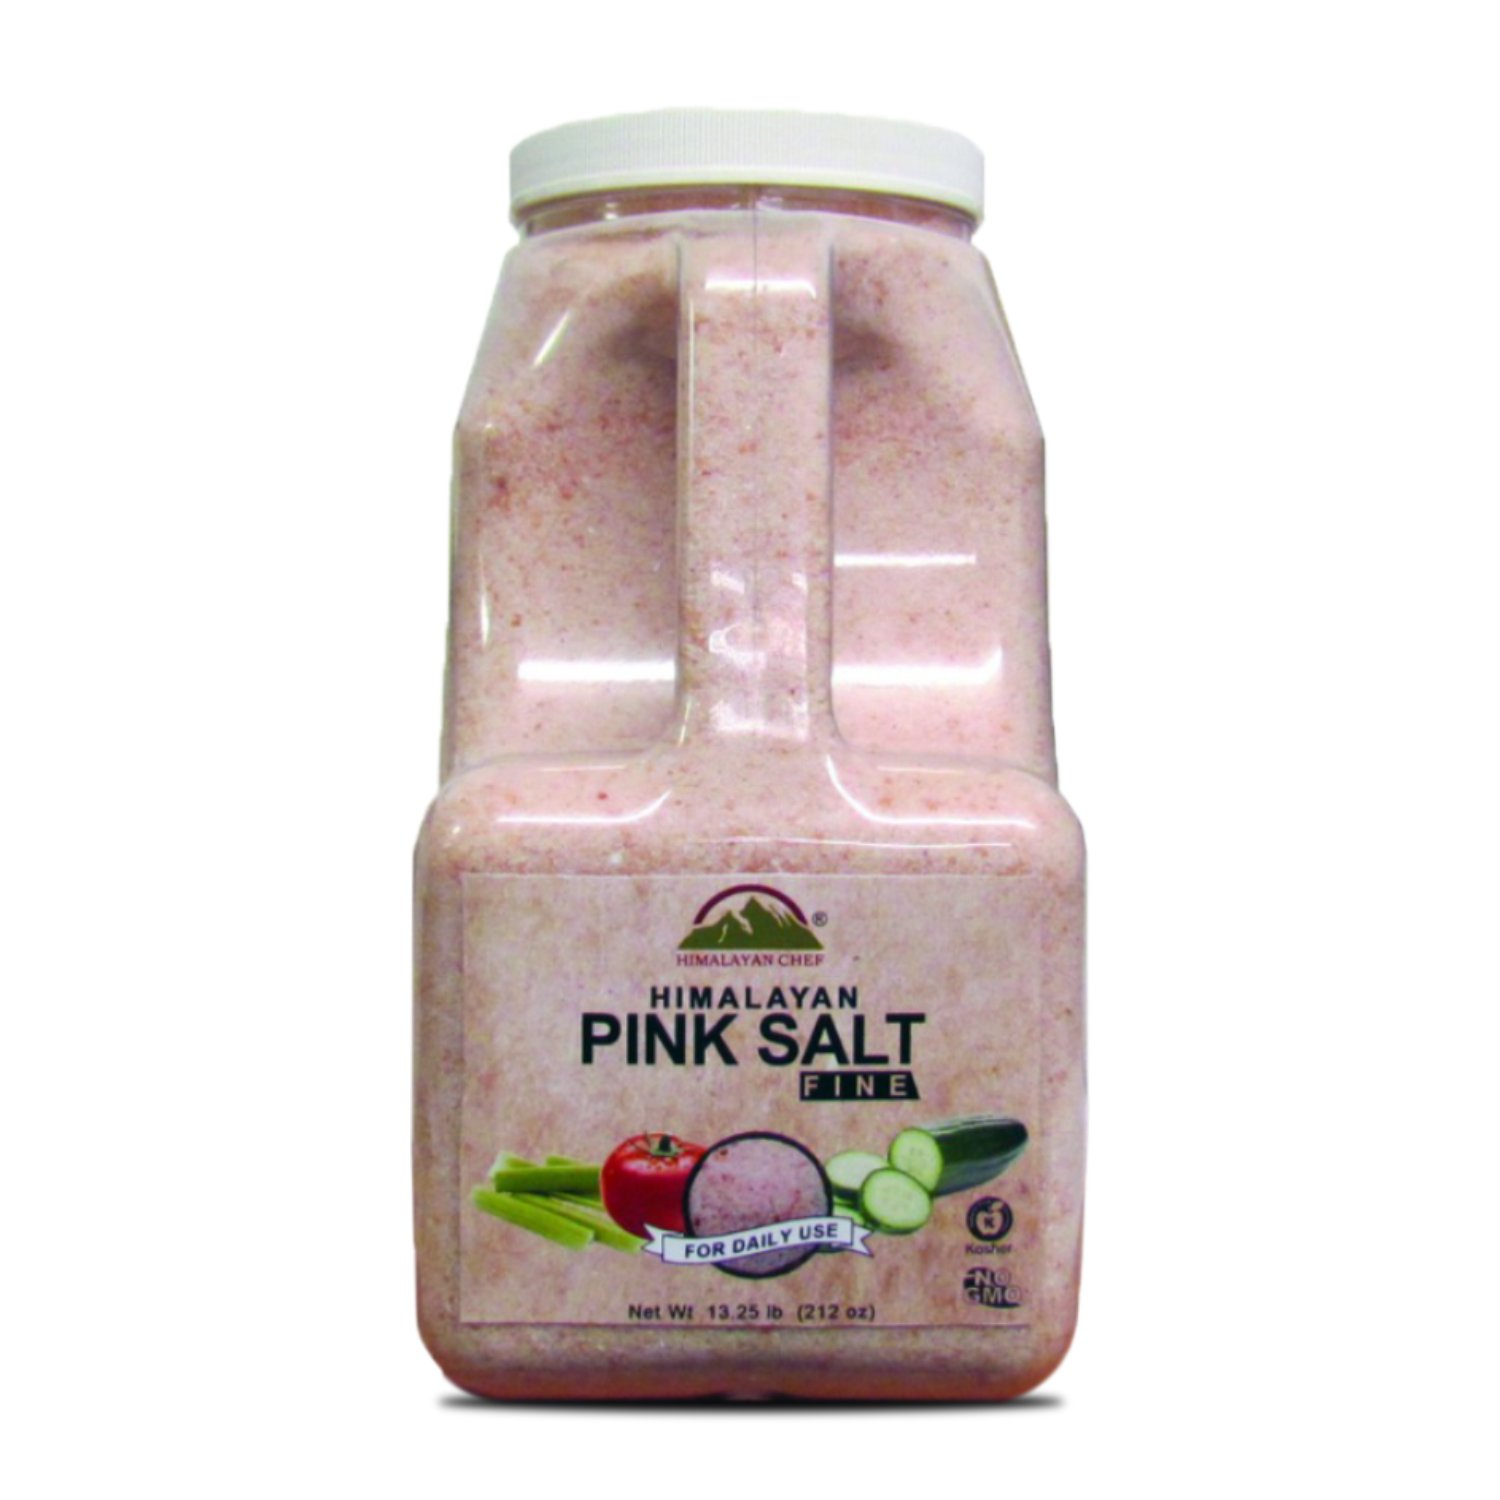 Himalayan Chef Natural Pink Salt Fine Plastic Jar,100% Pure Himalayan Salt - 13.25 LBS by Himalayan Chef